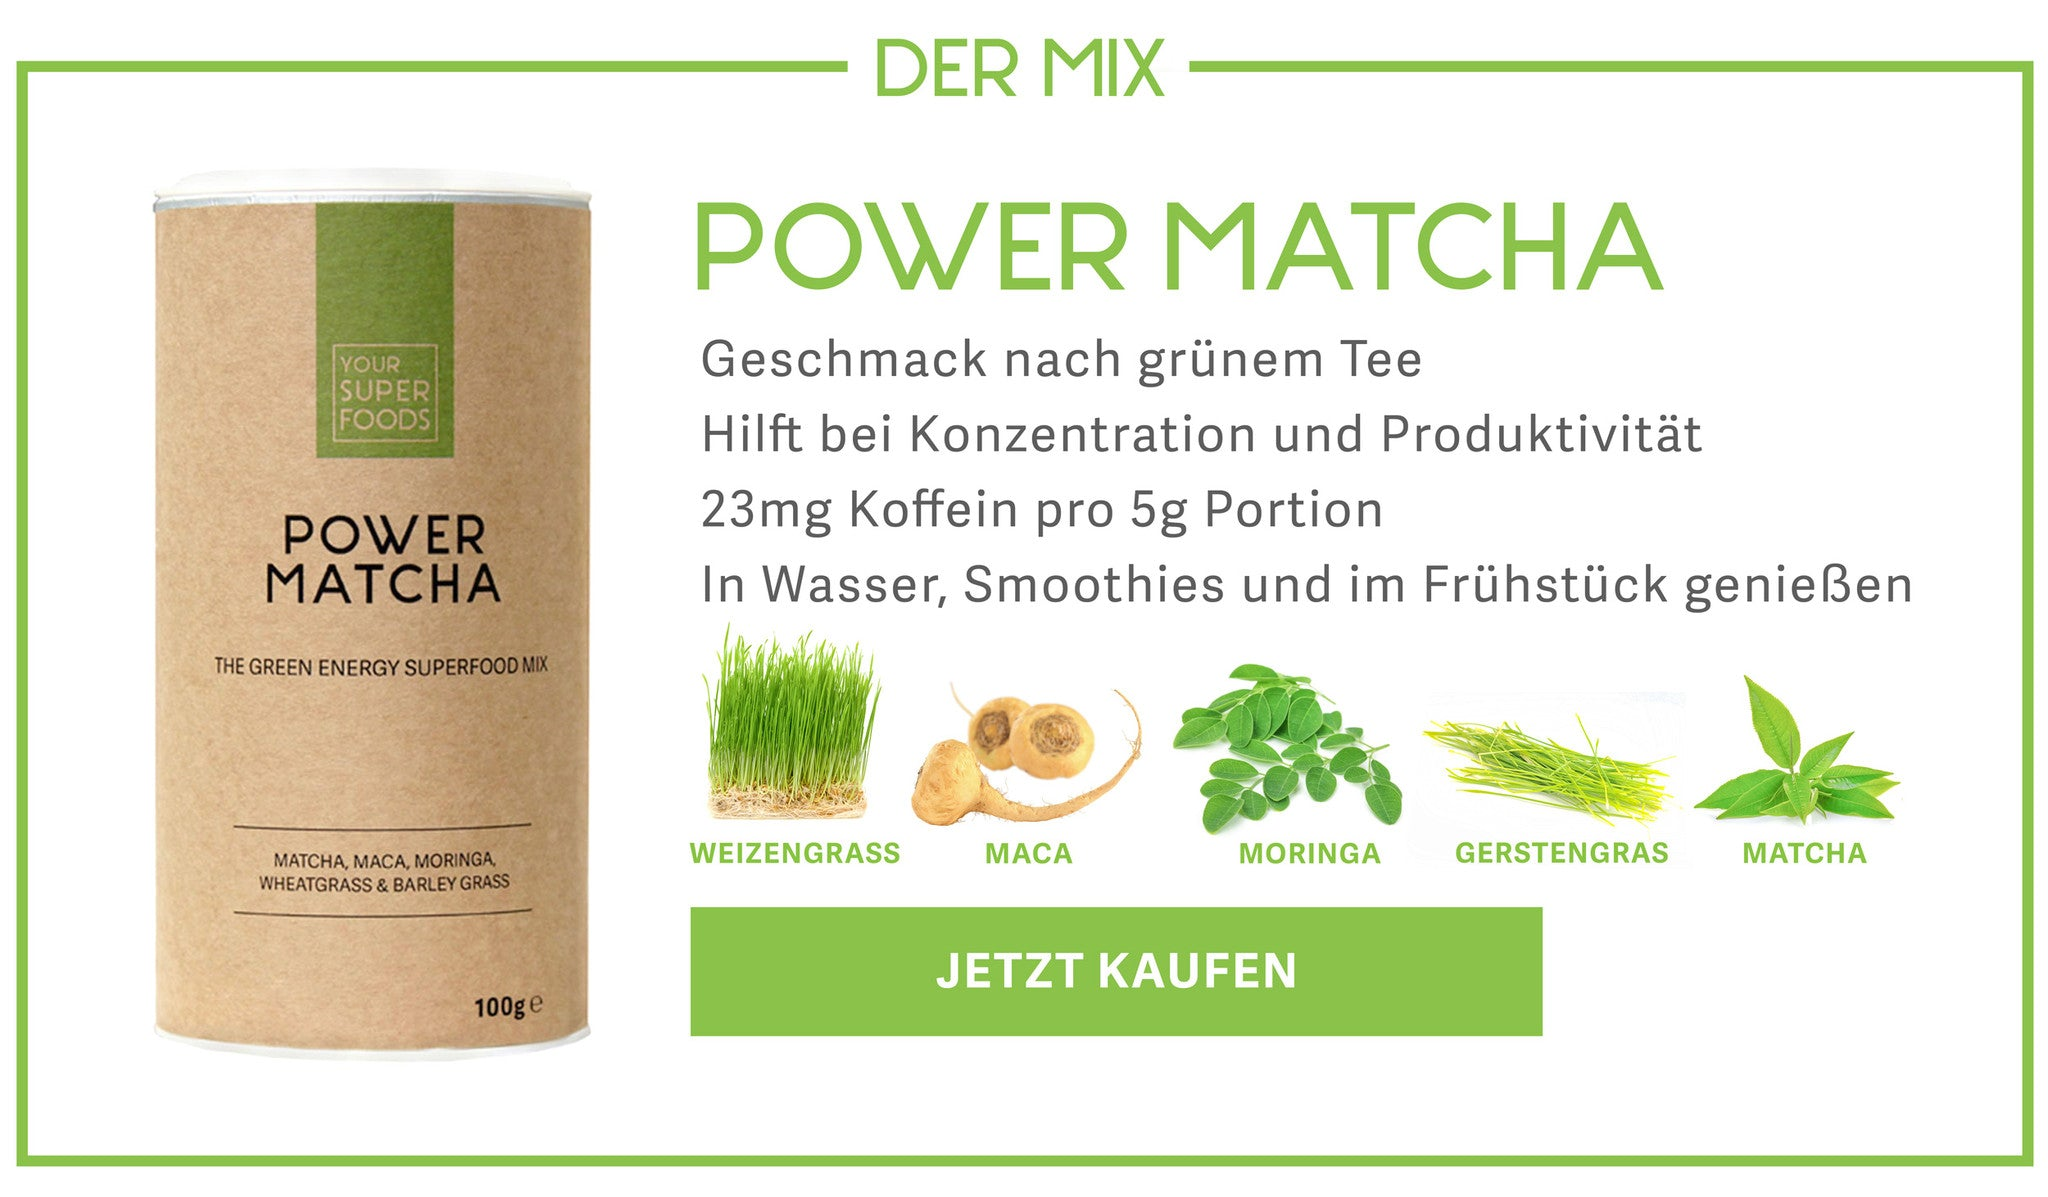 Power Matcha Mix Profil